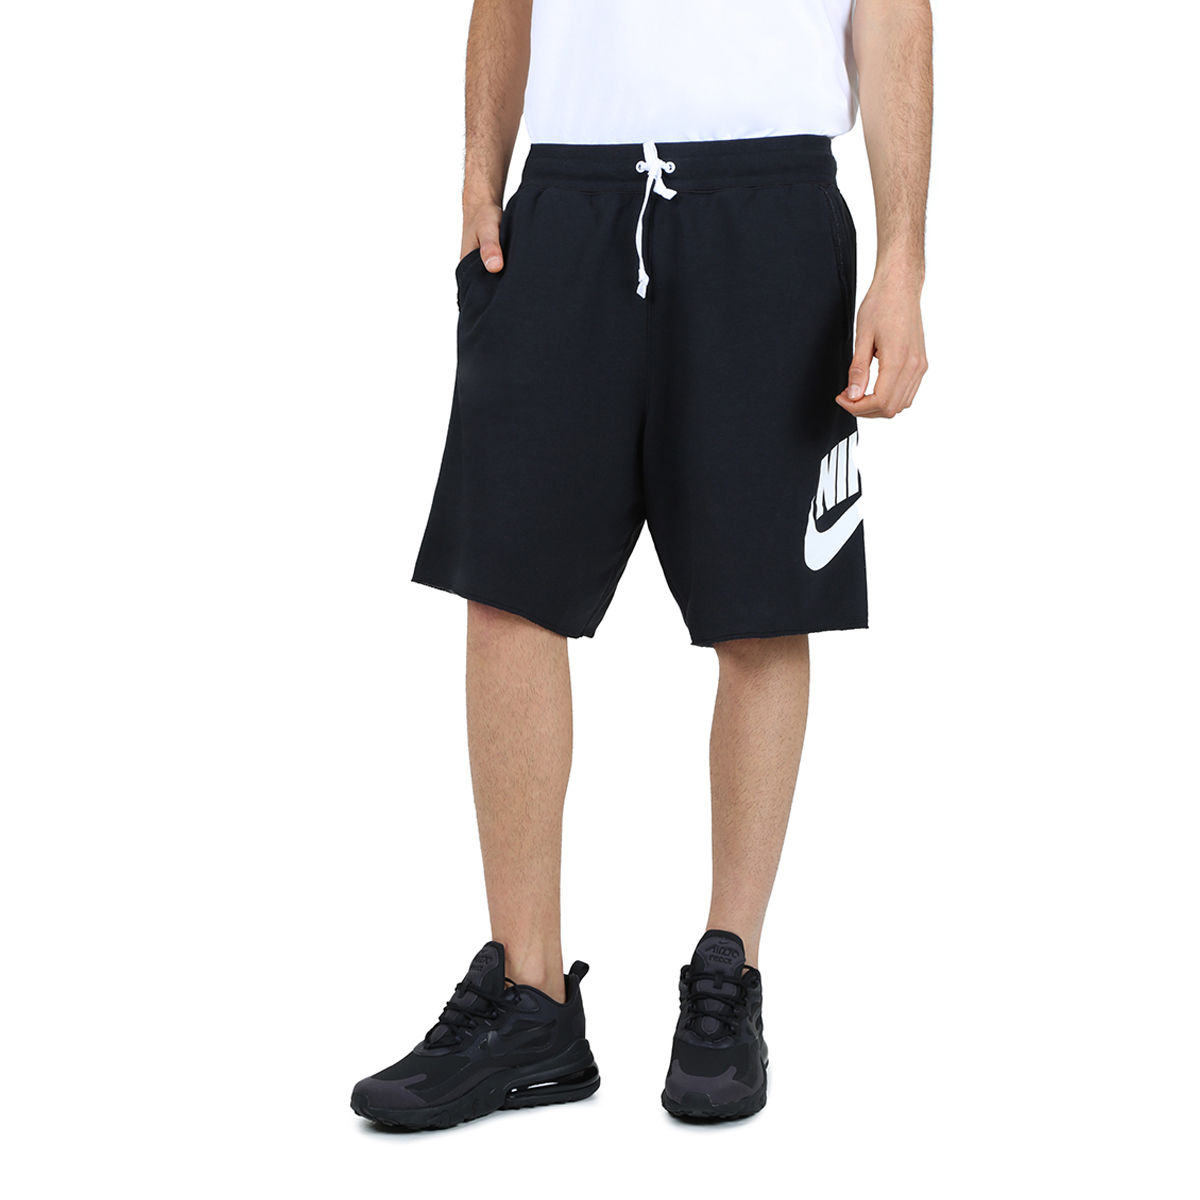 Short Nike Sportswear,  image number null